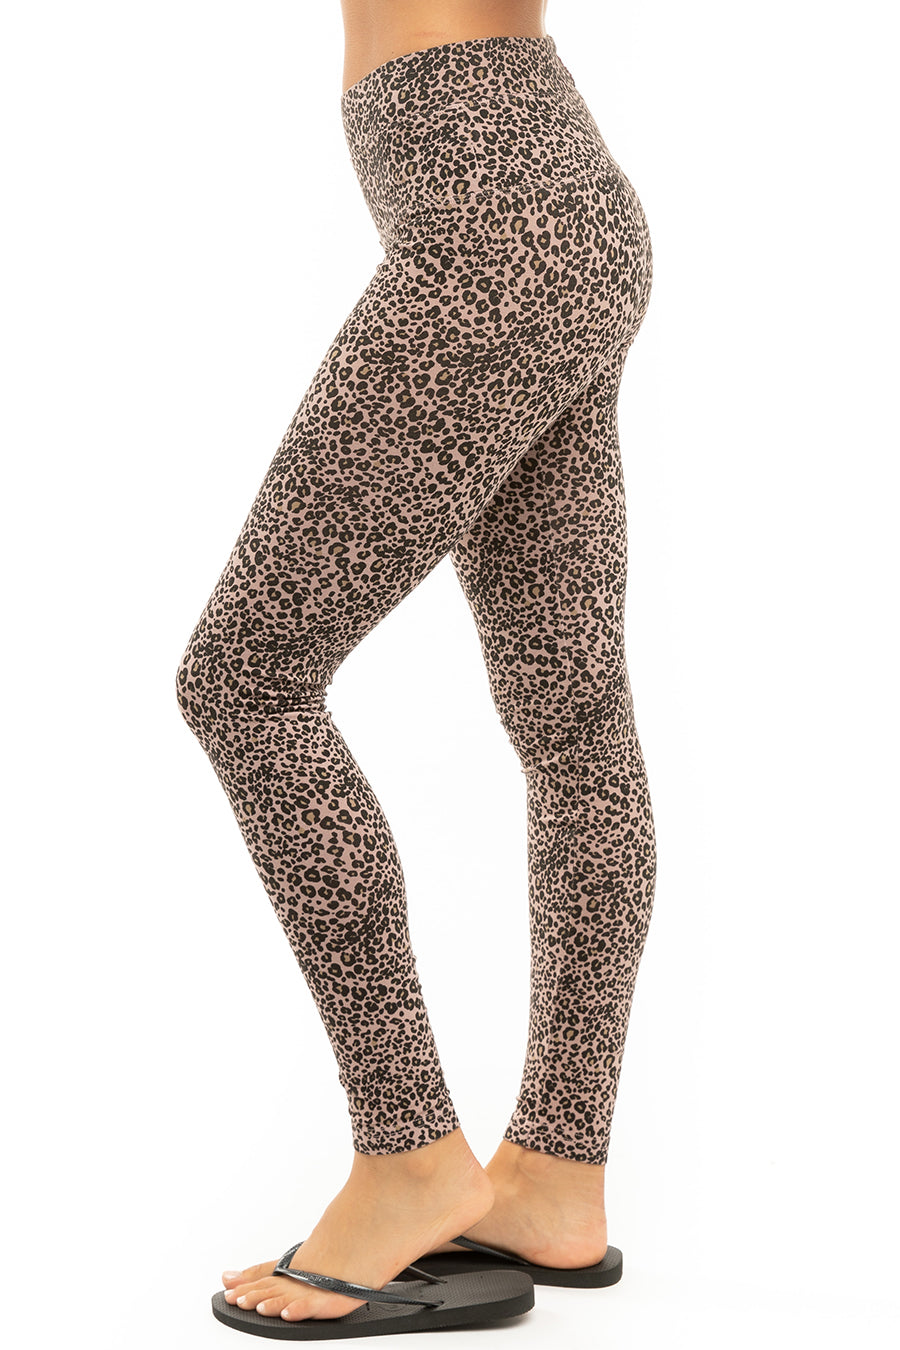 Hard Tail Forever Leopard High Rise Ankle Legging - Mauve - S